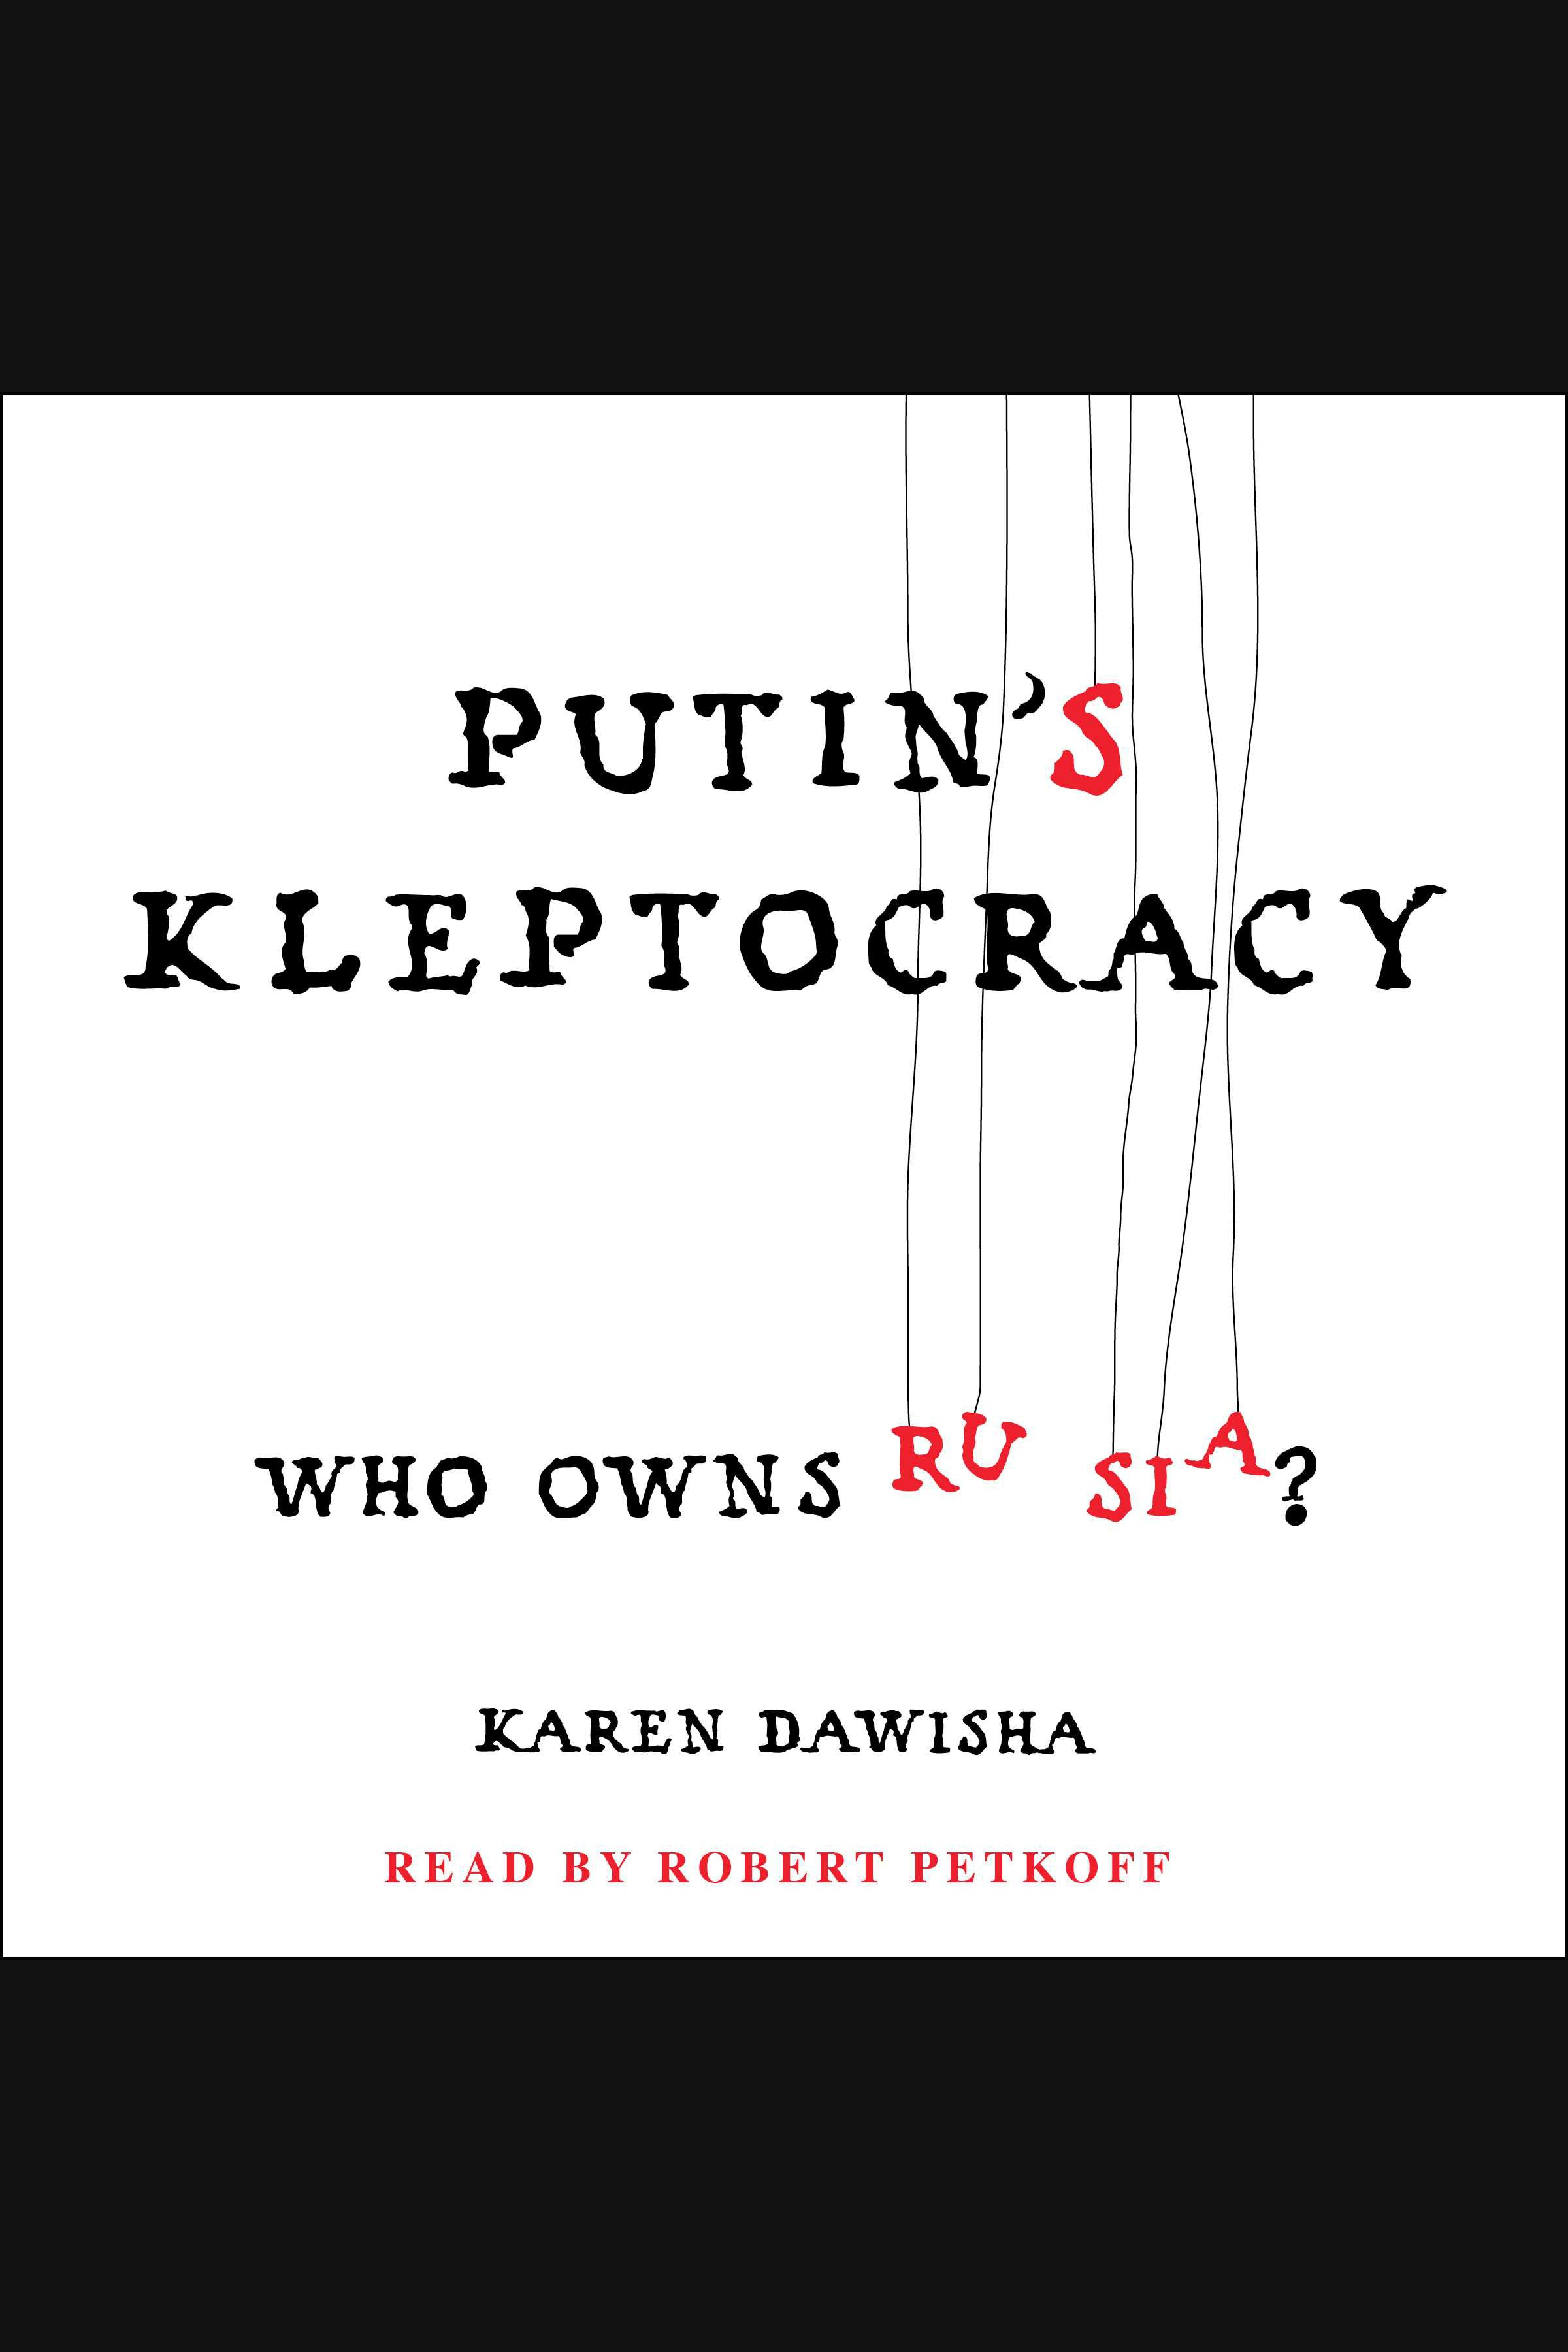 Putin's Kleptocracy Who Owns Russia? cover image